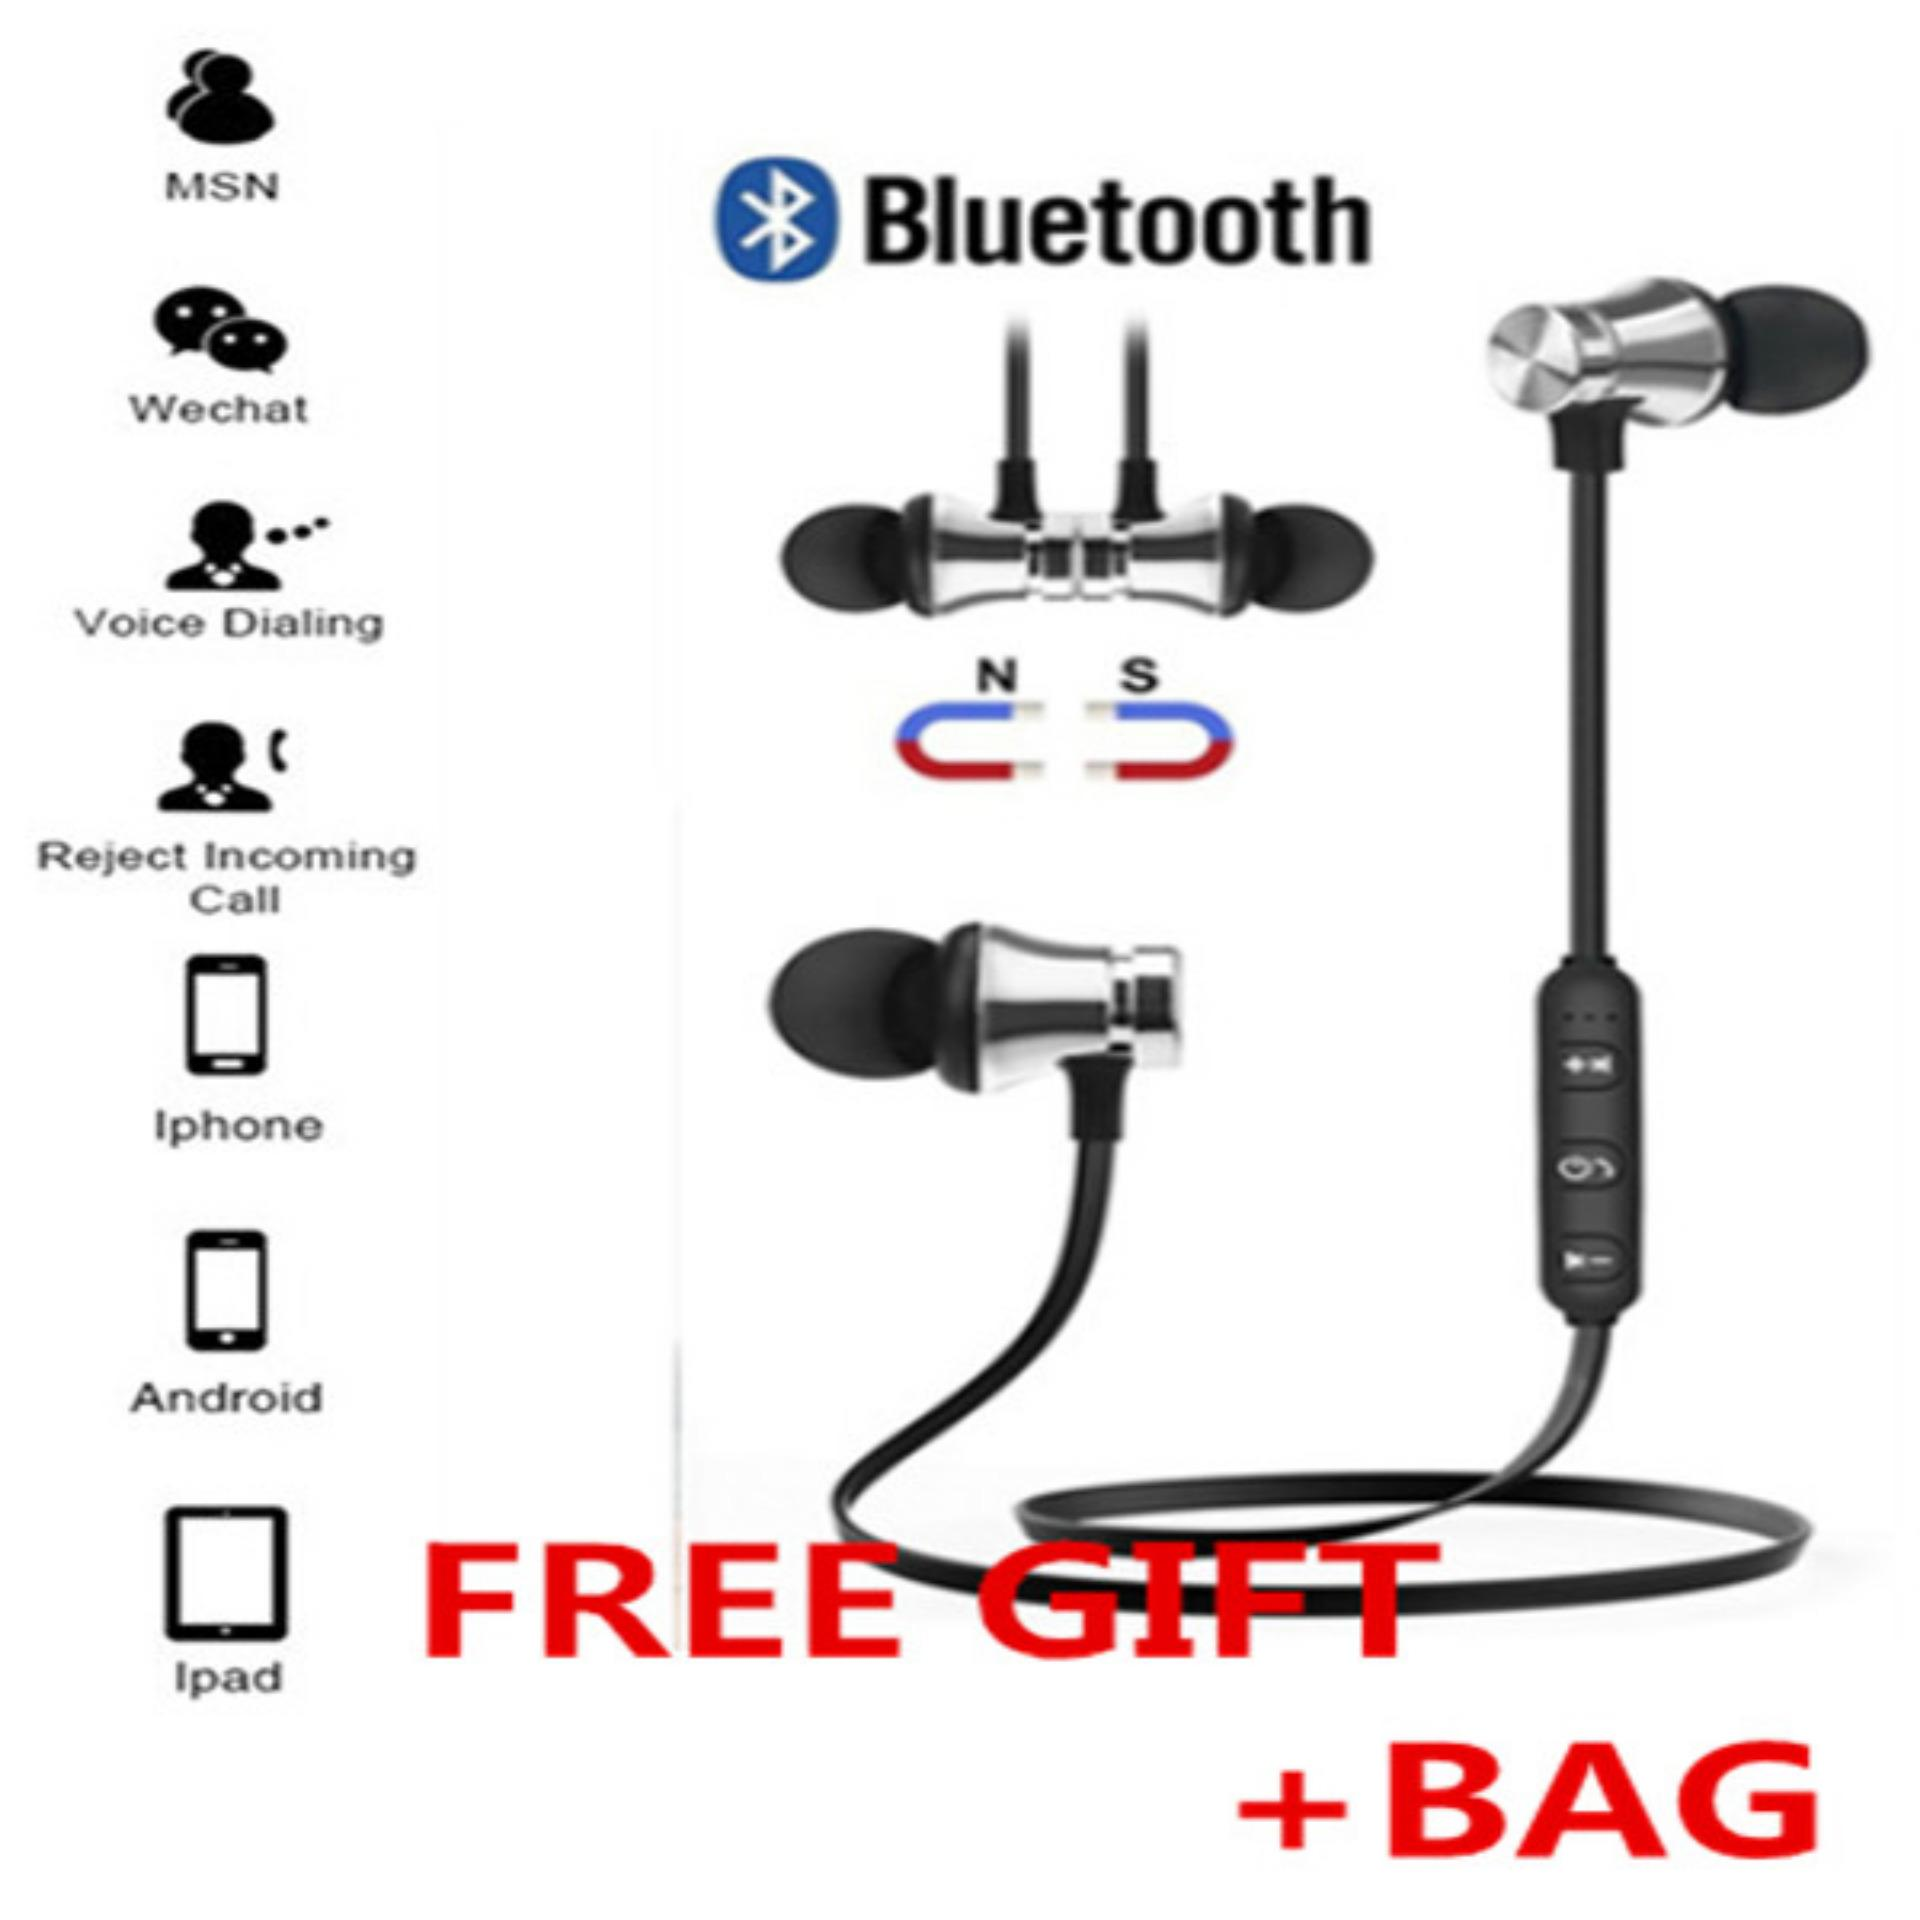 Buy Sell Cheapest Koklopo Bluetooth V4 Best Quality Product Deals Remax Clip On Earphone Receiver Rb T12 White Putih Airforce S8 Stereo Headset V 41 Rendah With Mikrofon Internasional